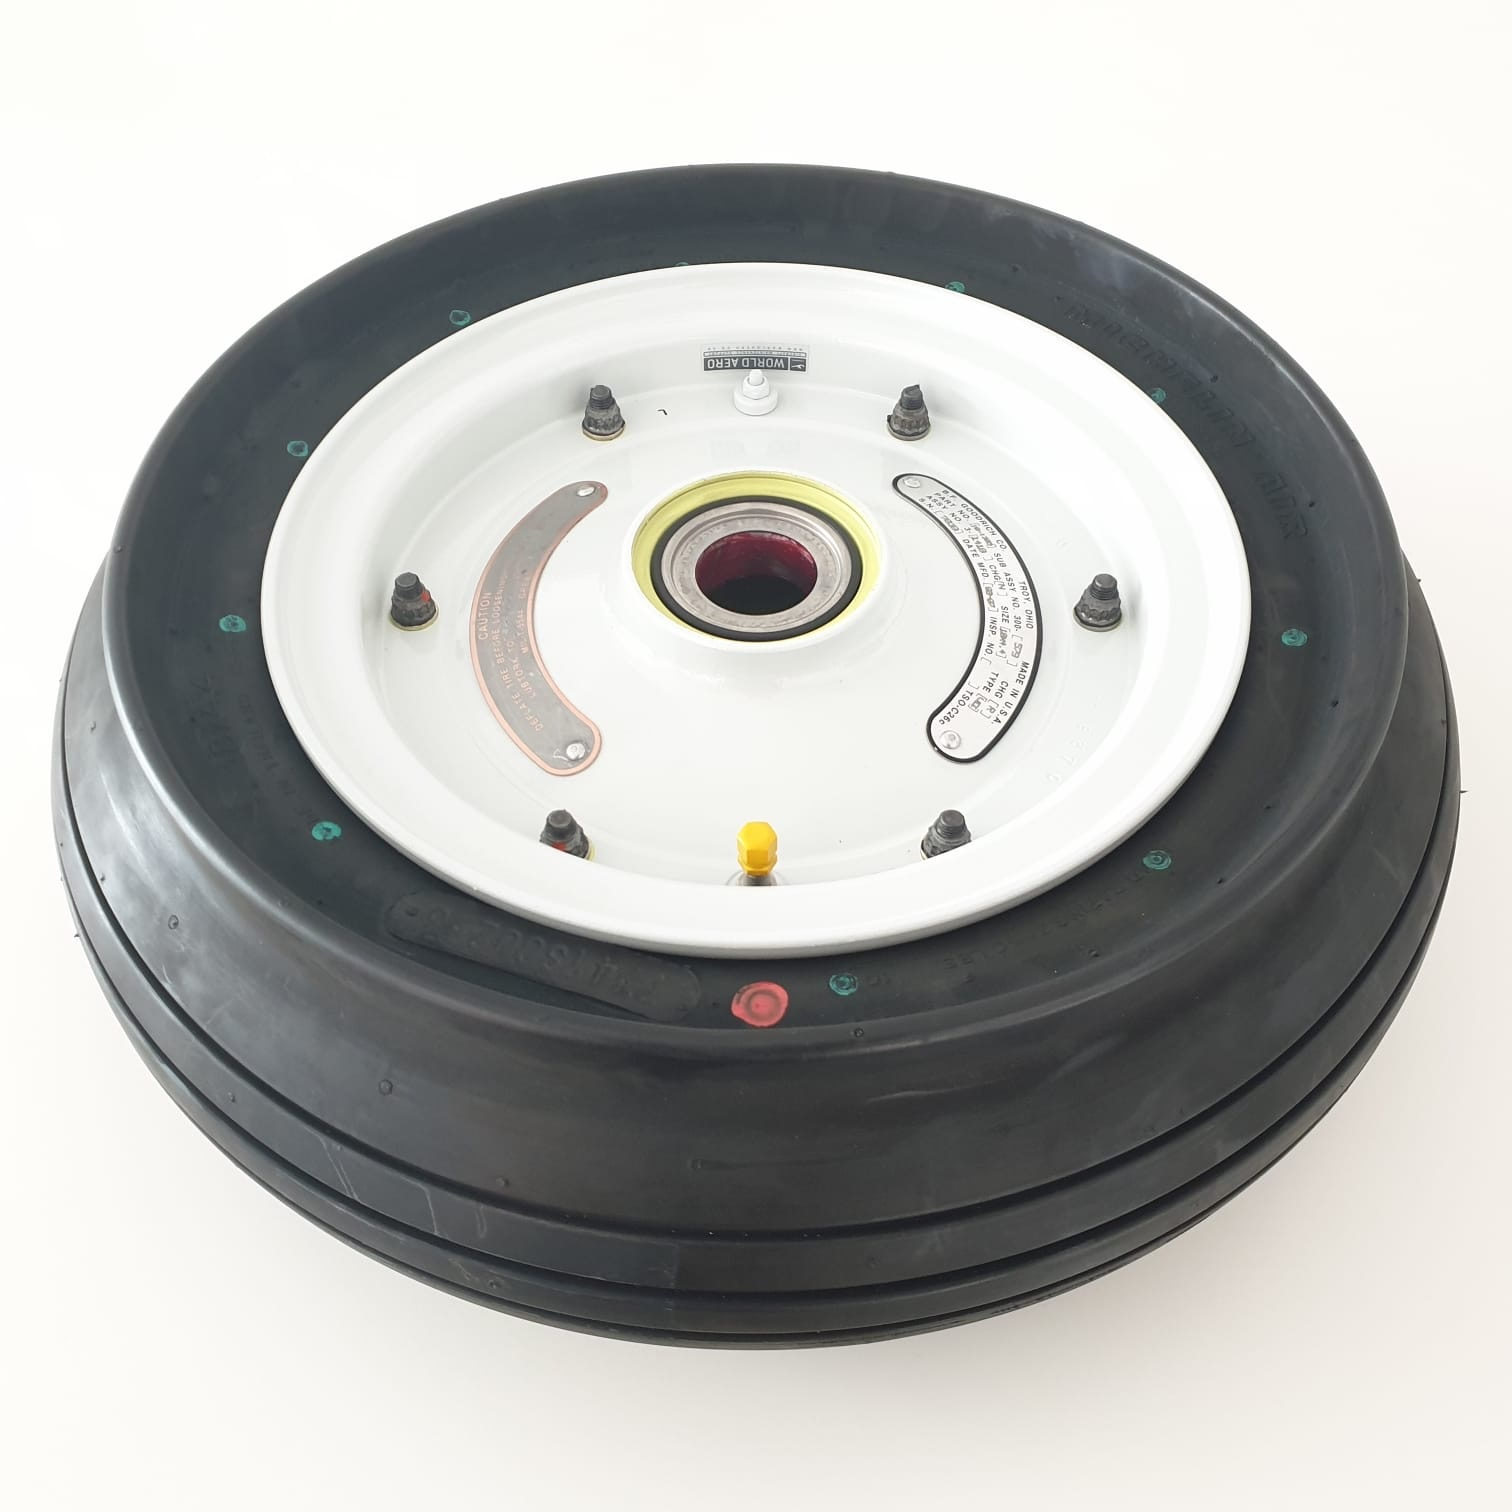 9914069-5 Cessna 560XL nose wheel